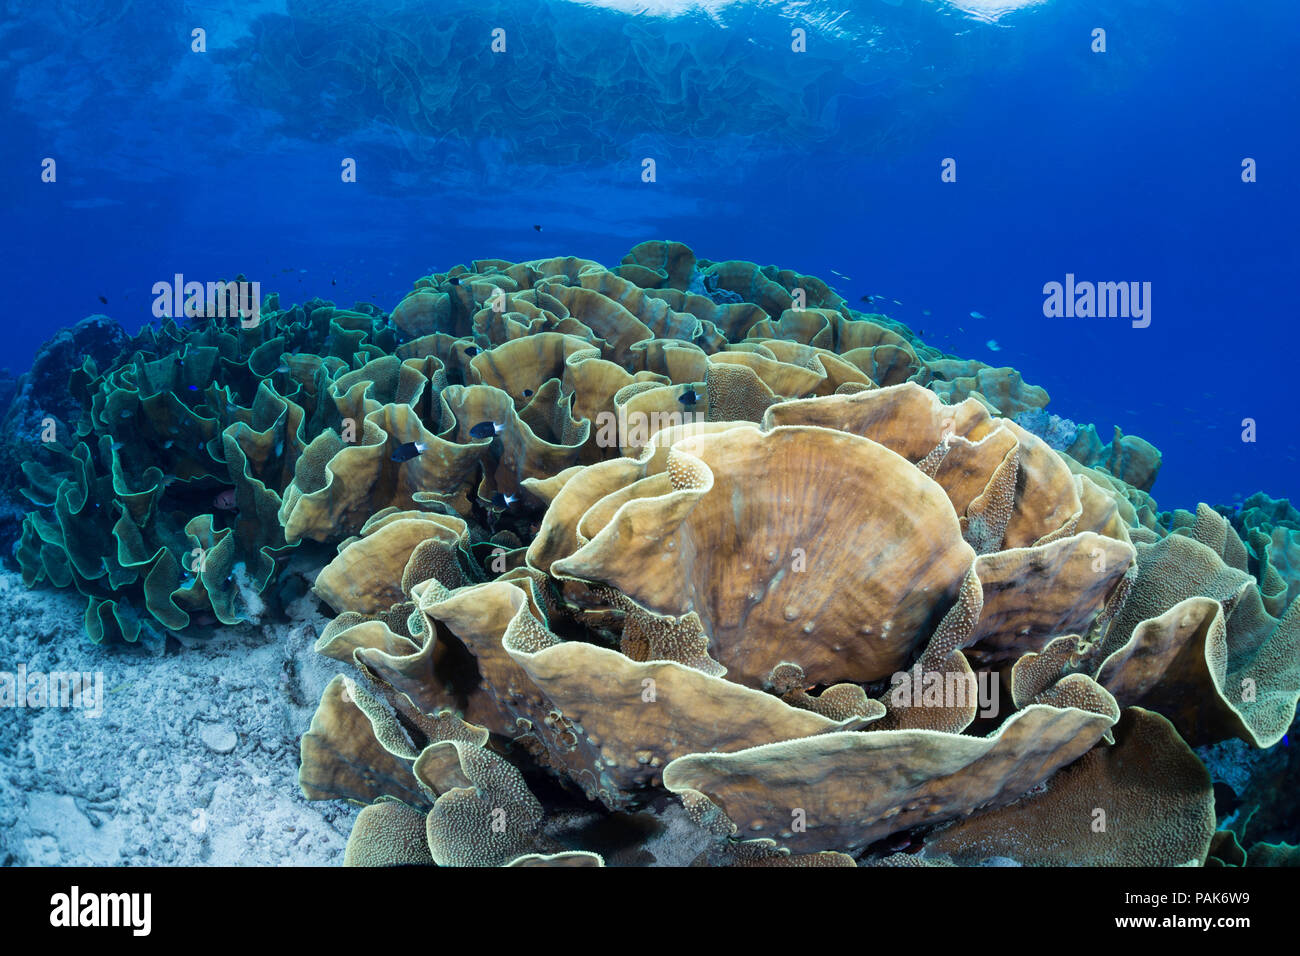 This substantial colony of lettuce coral, Turbinaria sp. forms a large section of the reef in shallow water in order to utilize as much sunlight as po - Stock Image